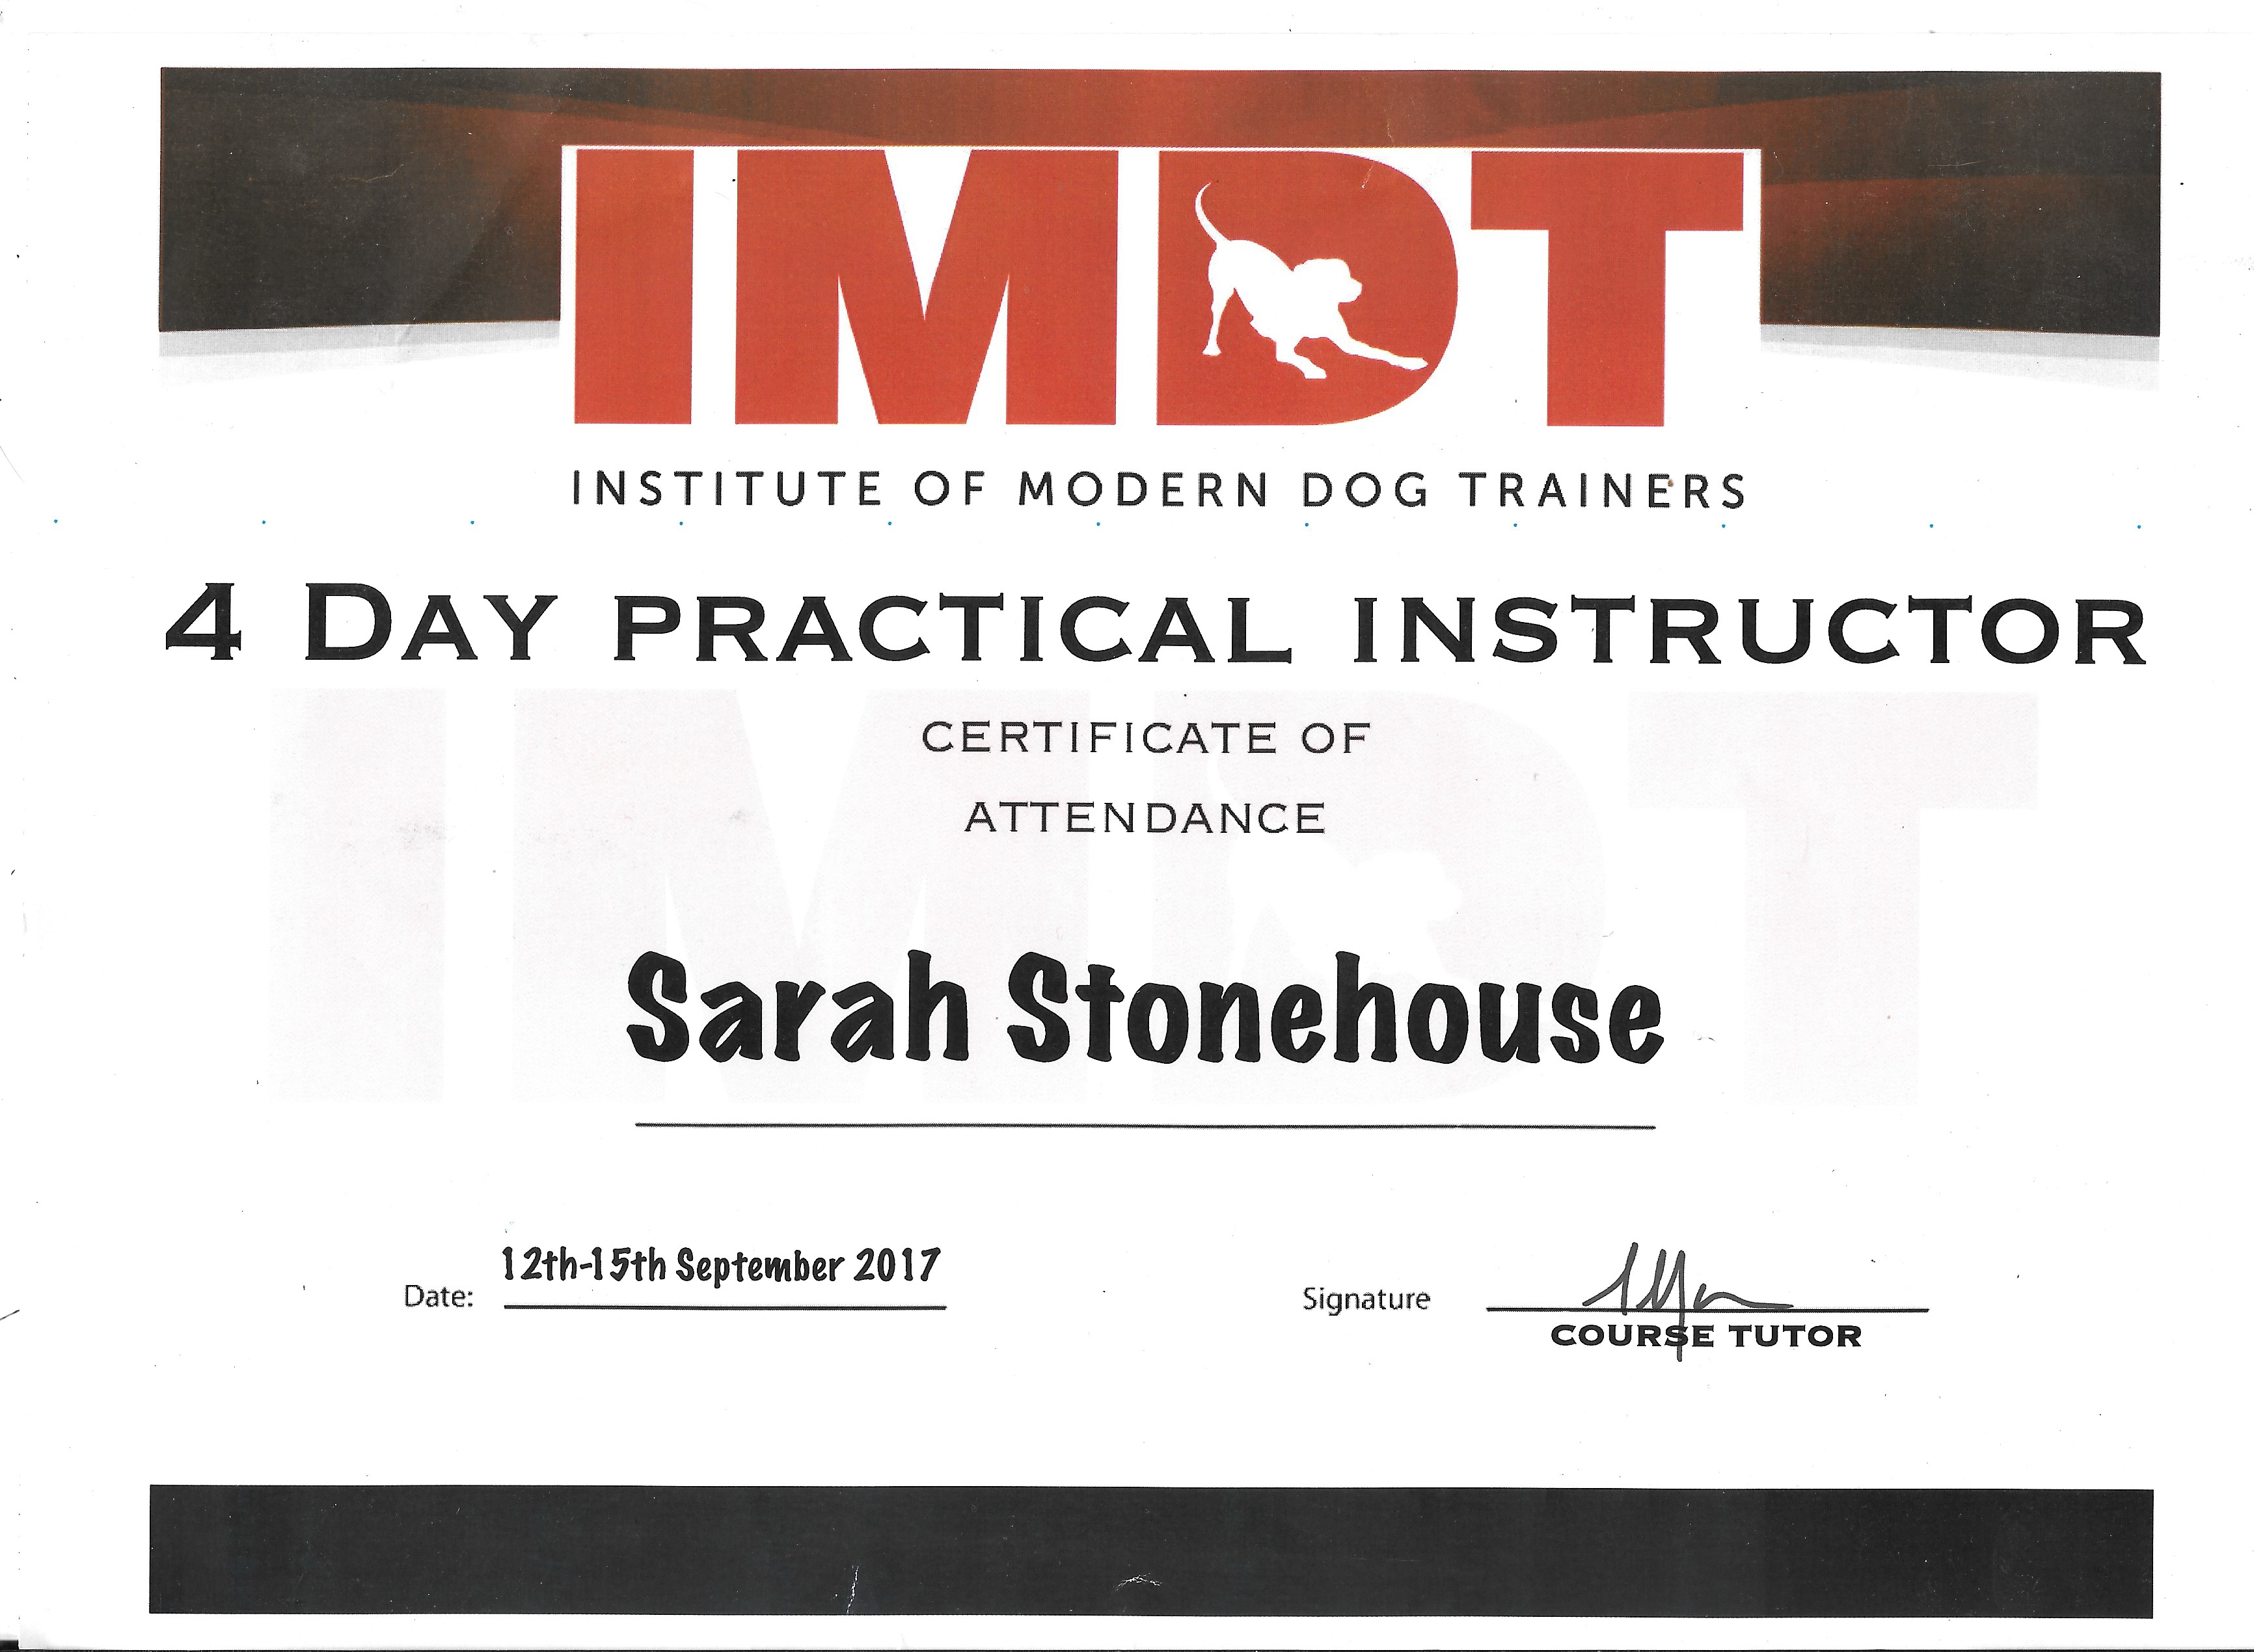 4 Day Practical Instructor